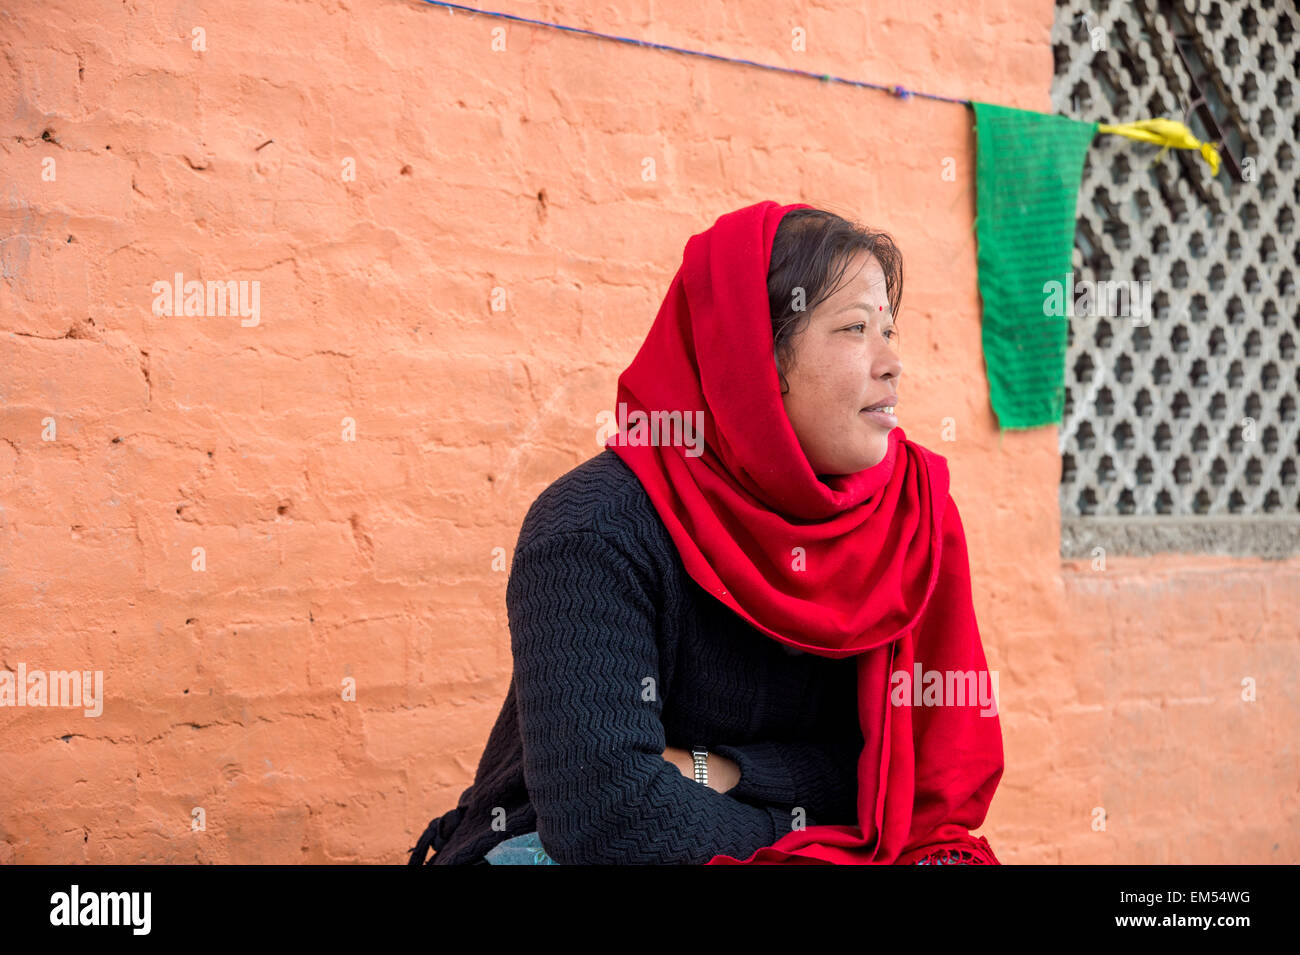 Nepali woman with red scarf in Kathmandu - Stock Image